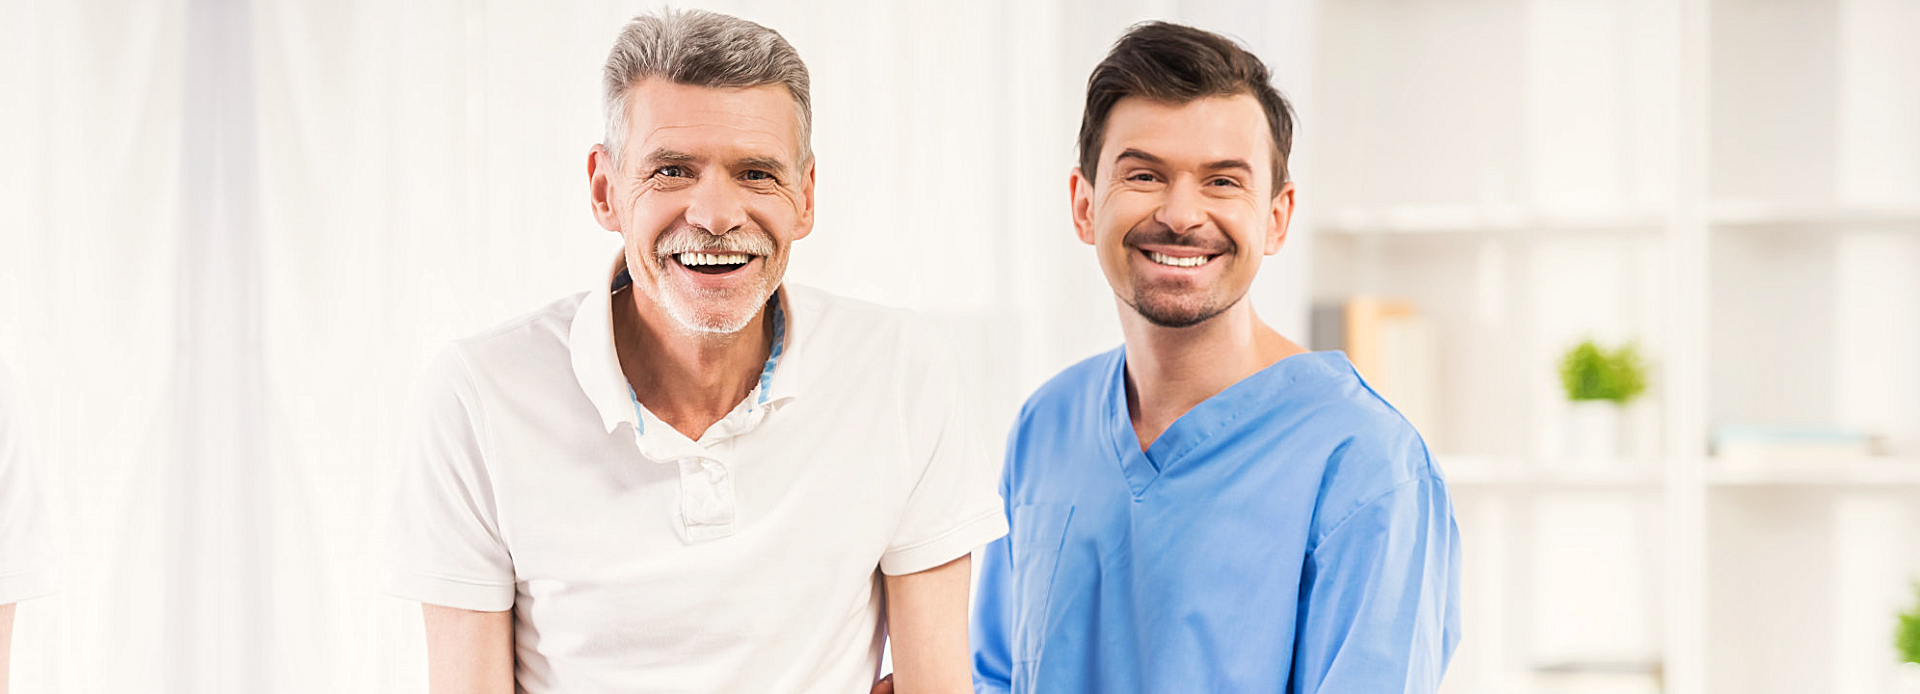 male caregiver and senior man